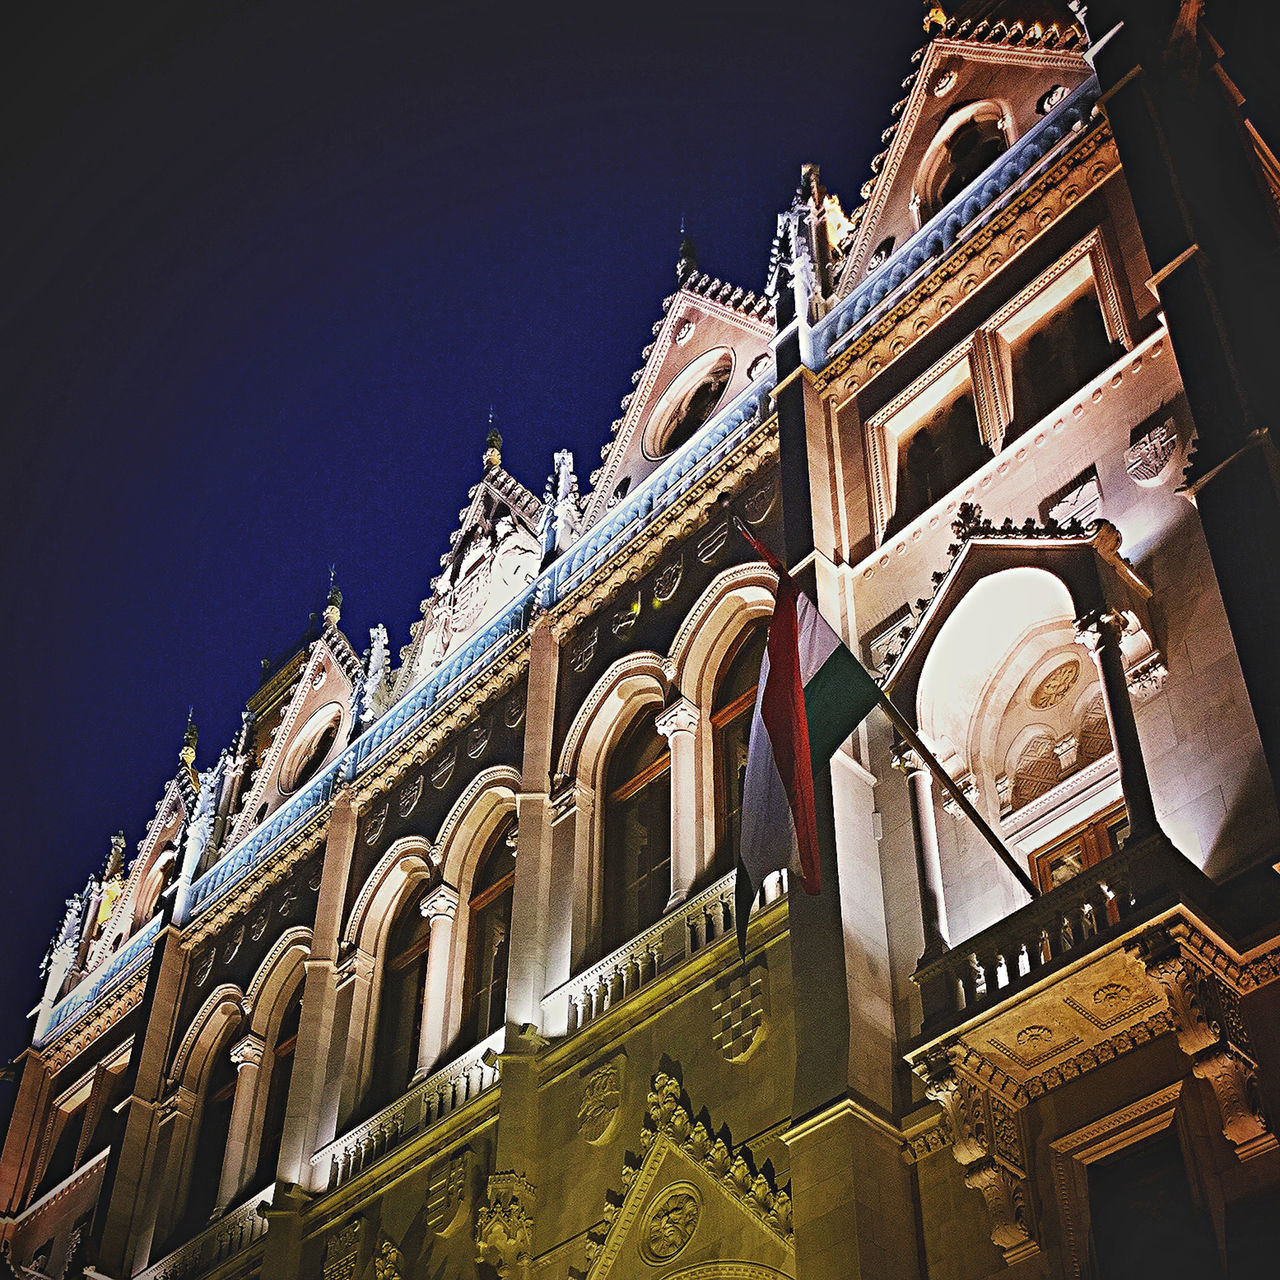 Arch Architecture Budapest Building Exterior Built Structure Capital Cities  City Clear Sky Famous Place Flag History Hungary International Landmark Low Angle View Night Orszaghaz Parliament Place Of Worship Sky Tourism Travel Travel Destinations Cities At Night